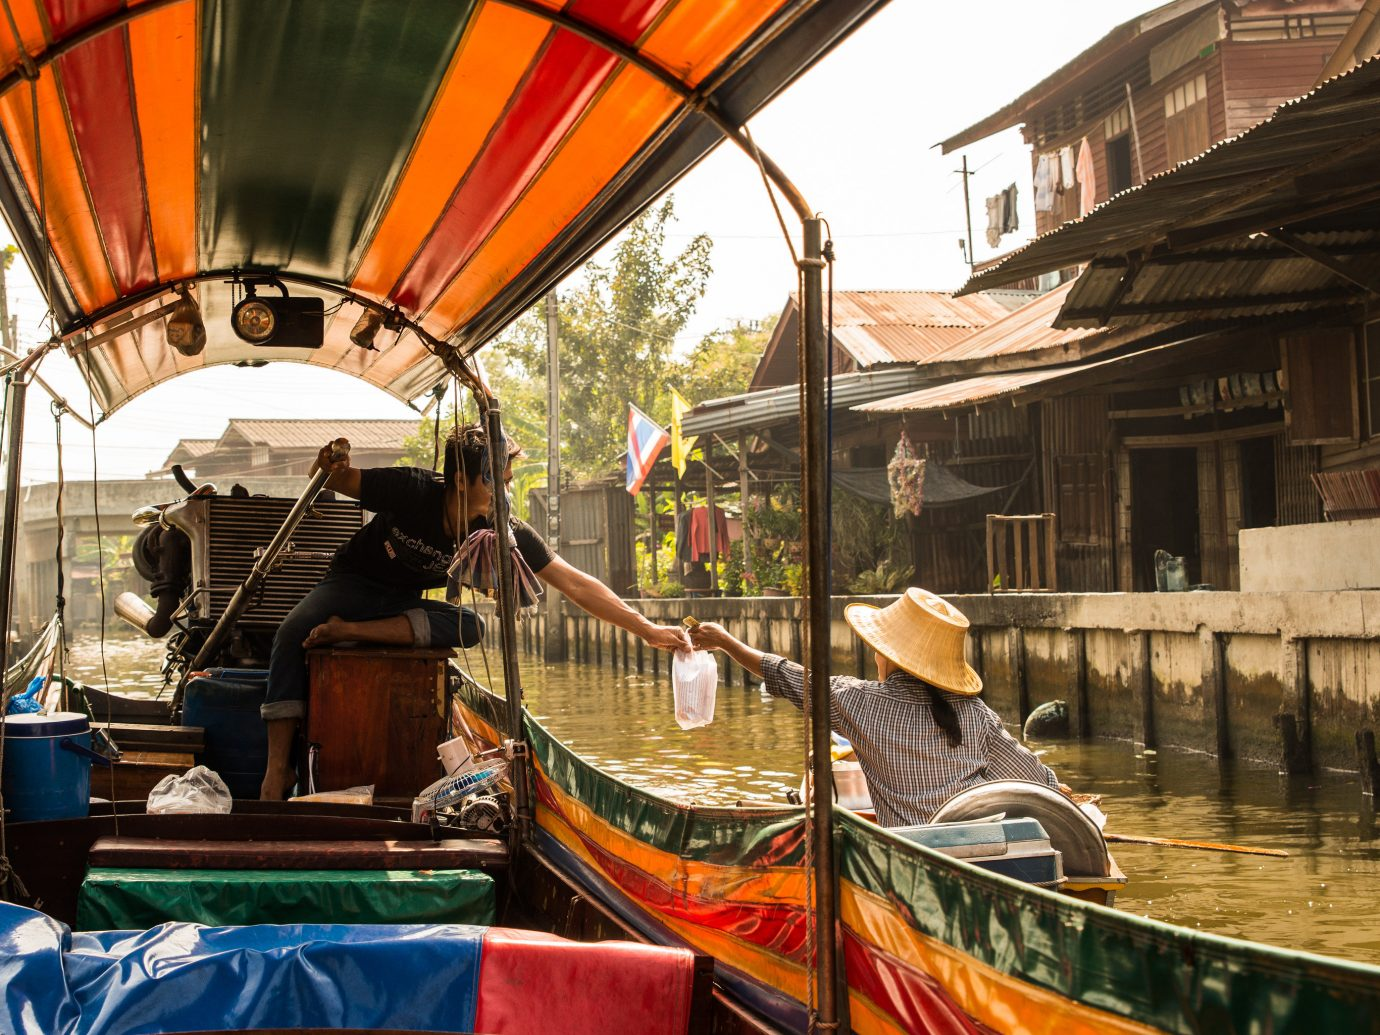 Travel Tech Travel Tips building outdoor Boat vehicle tourism waterway travel market colorful